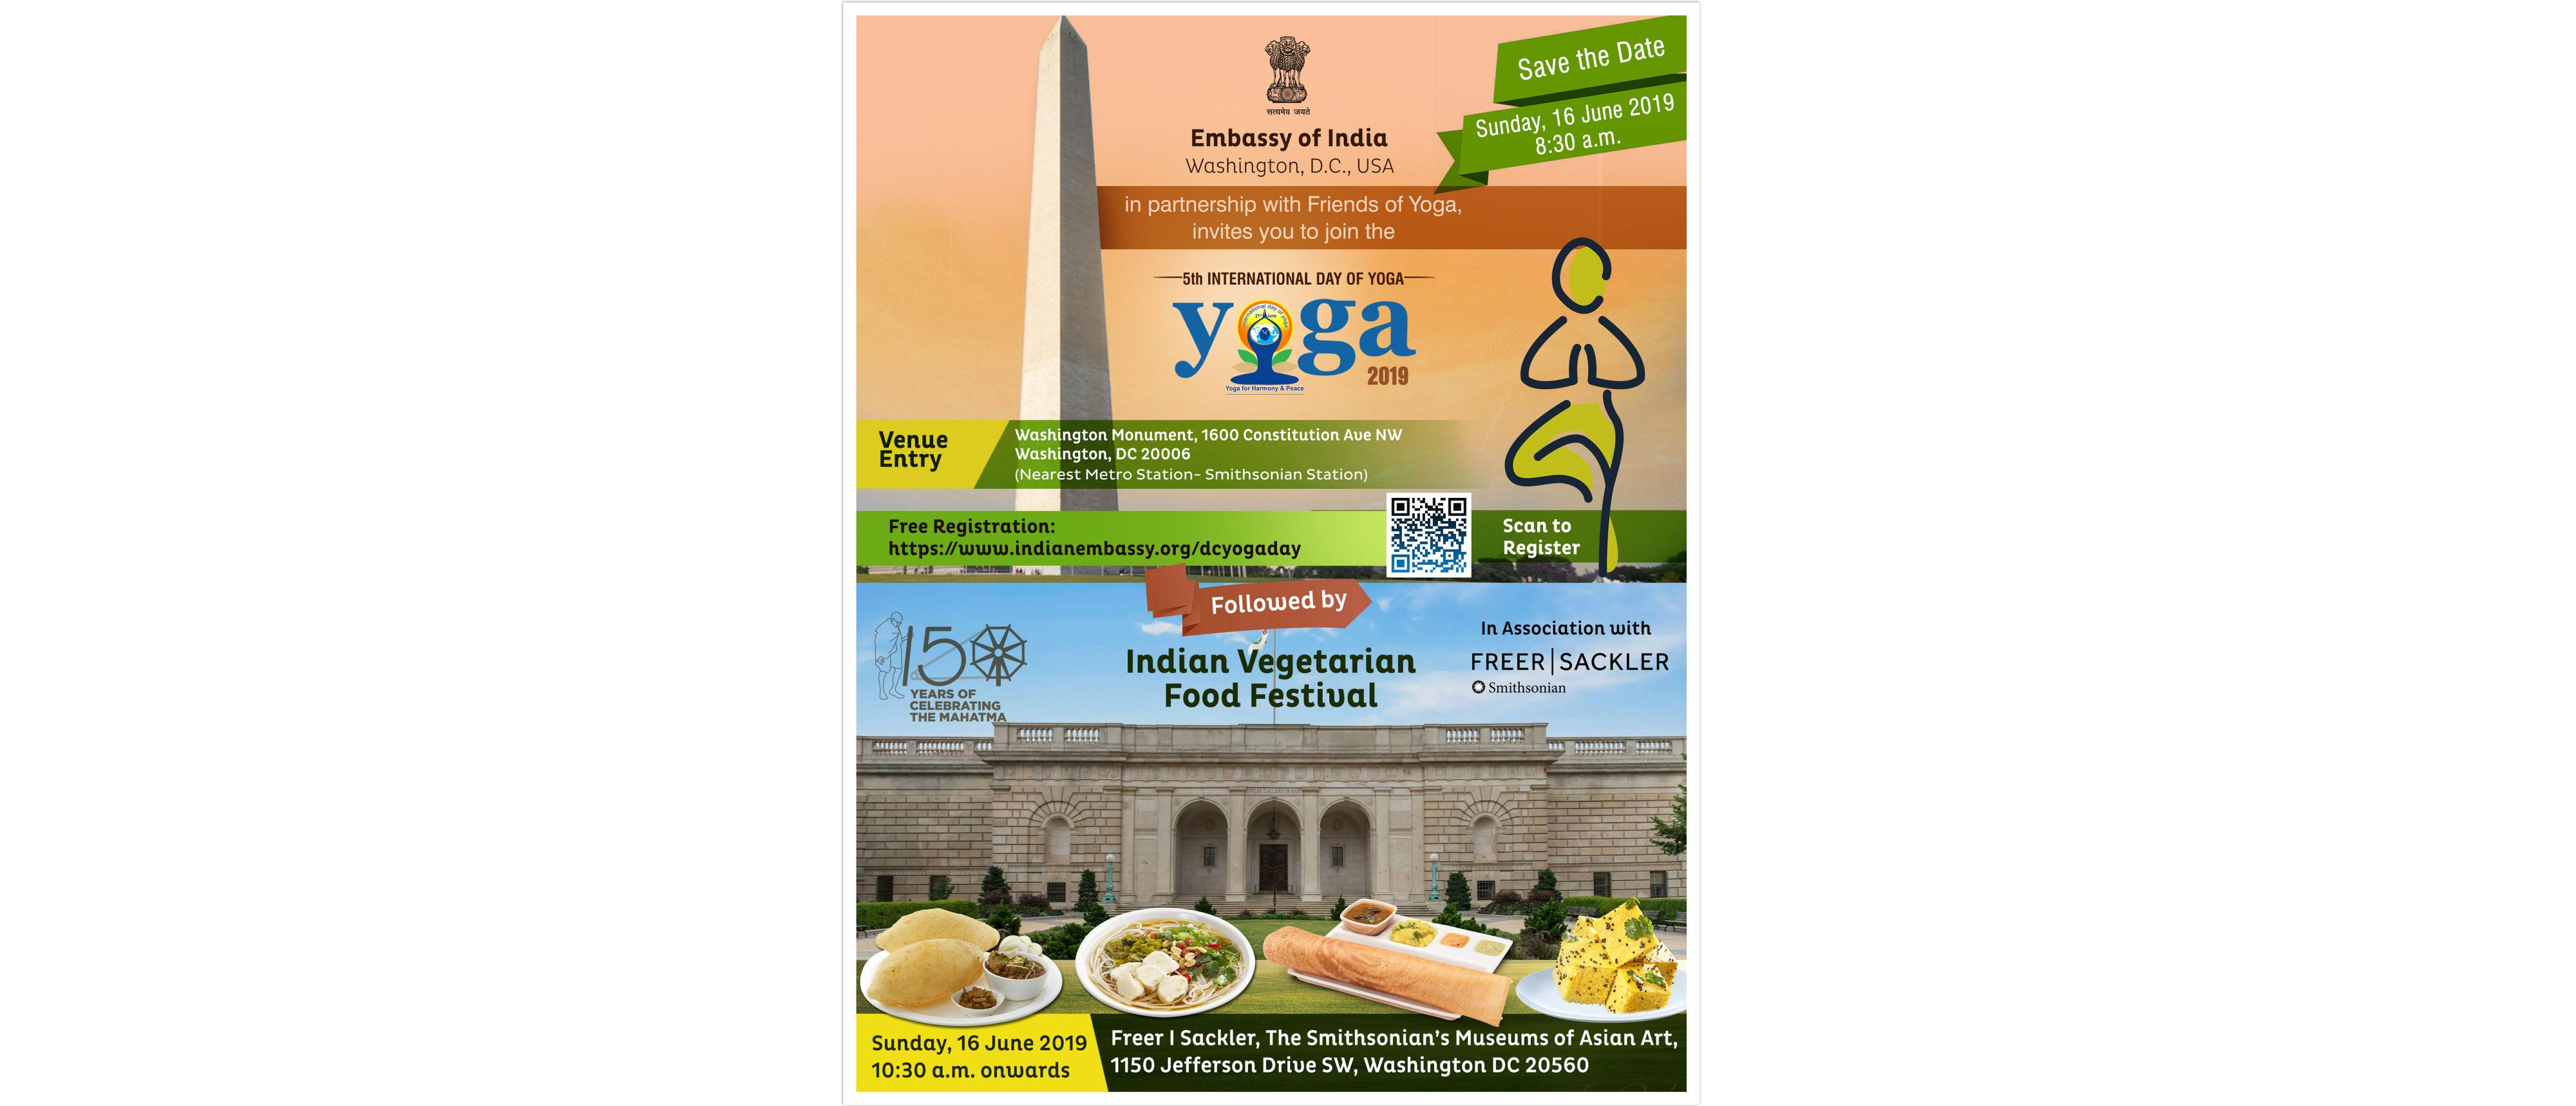 "Embassy of India in partnership with  Friends of Yoga, invites you to join with your family for the 5th International Day of Yoga on Sunday , June 16, 2019 at 8.30 a.m at Washington Monument. Free event and please register at <a href=""https://www.eventbrite.com/e/5th-international-day-of-yoga-tickets-6148106151?aff=utm_source%3Deb_email%26utm_medium%3Demail%26utm_campaign%3Dnew_event_email&utm_term=eventurl_text"" target=""_blank"">click here</a> <br> The event will be followed by Indian Vegetarian Food Festival at 10.30 a.m in association with Freer Sackler, 1150 Jefferson drive, Washington DC 20560."